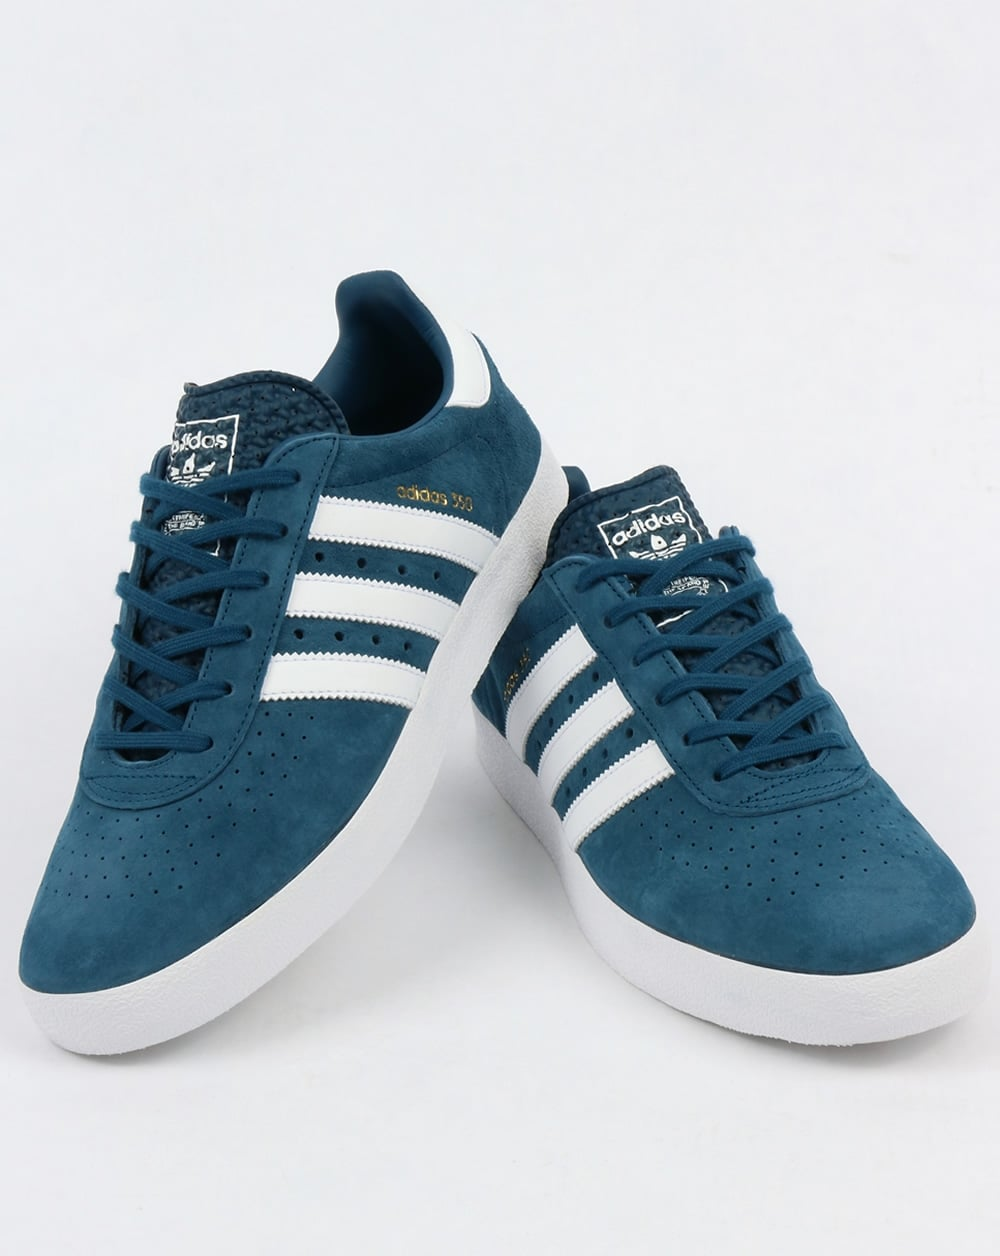 4bfcf0fb7 Adidas 350 Trainers Blue Night White